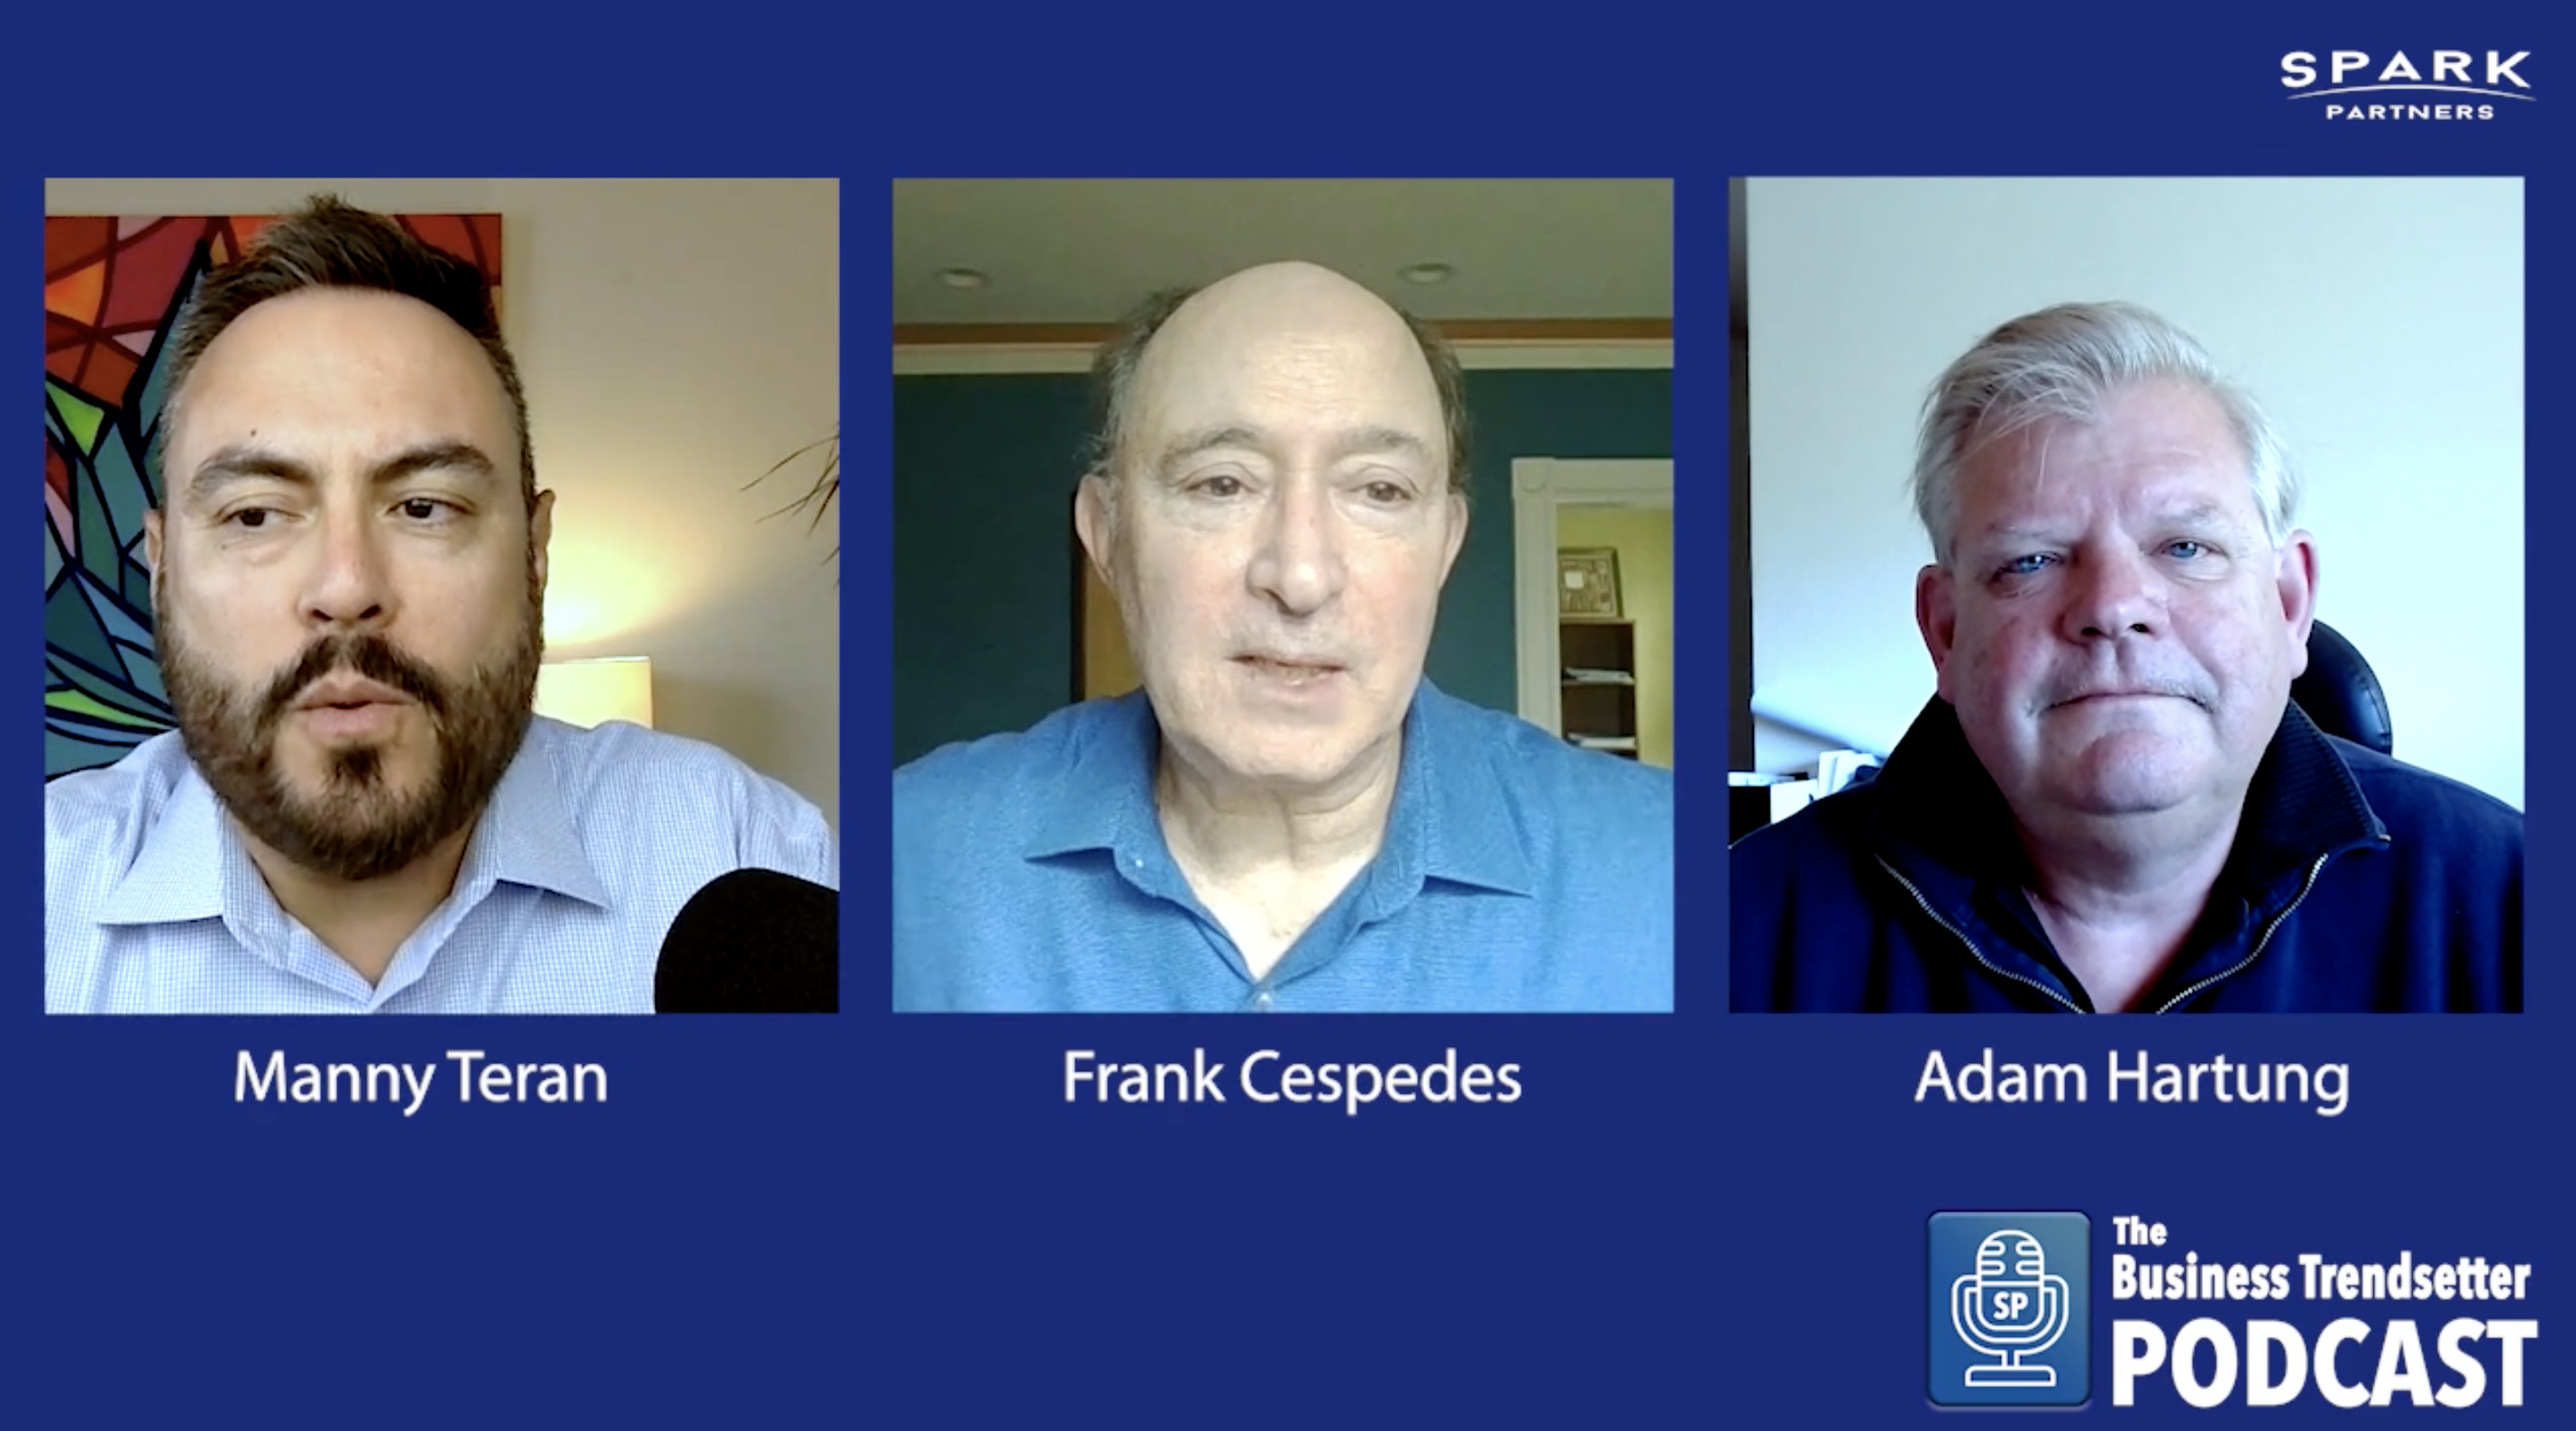 How to Sell in a World that Never Stops Changing - Special Interview with Frank Cespedes